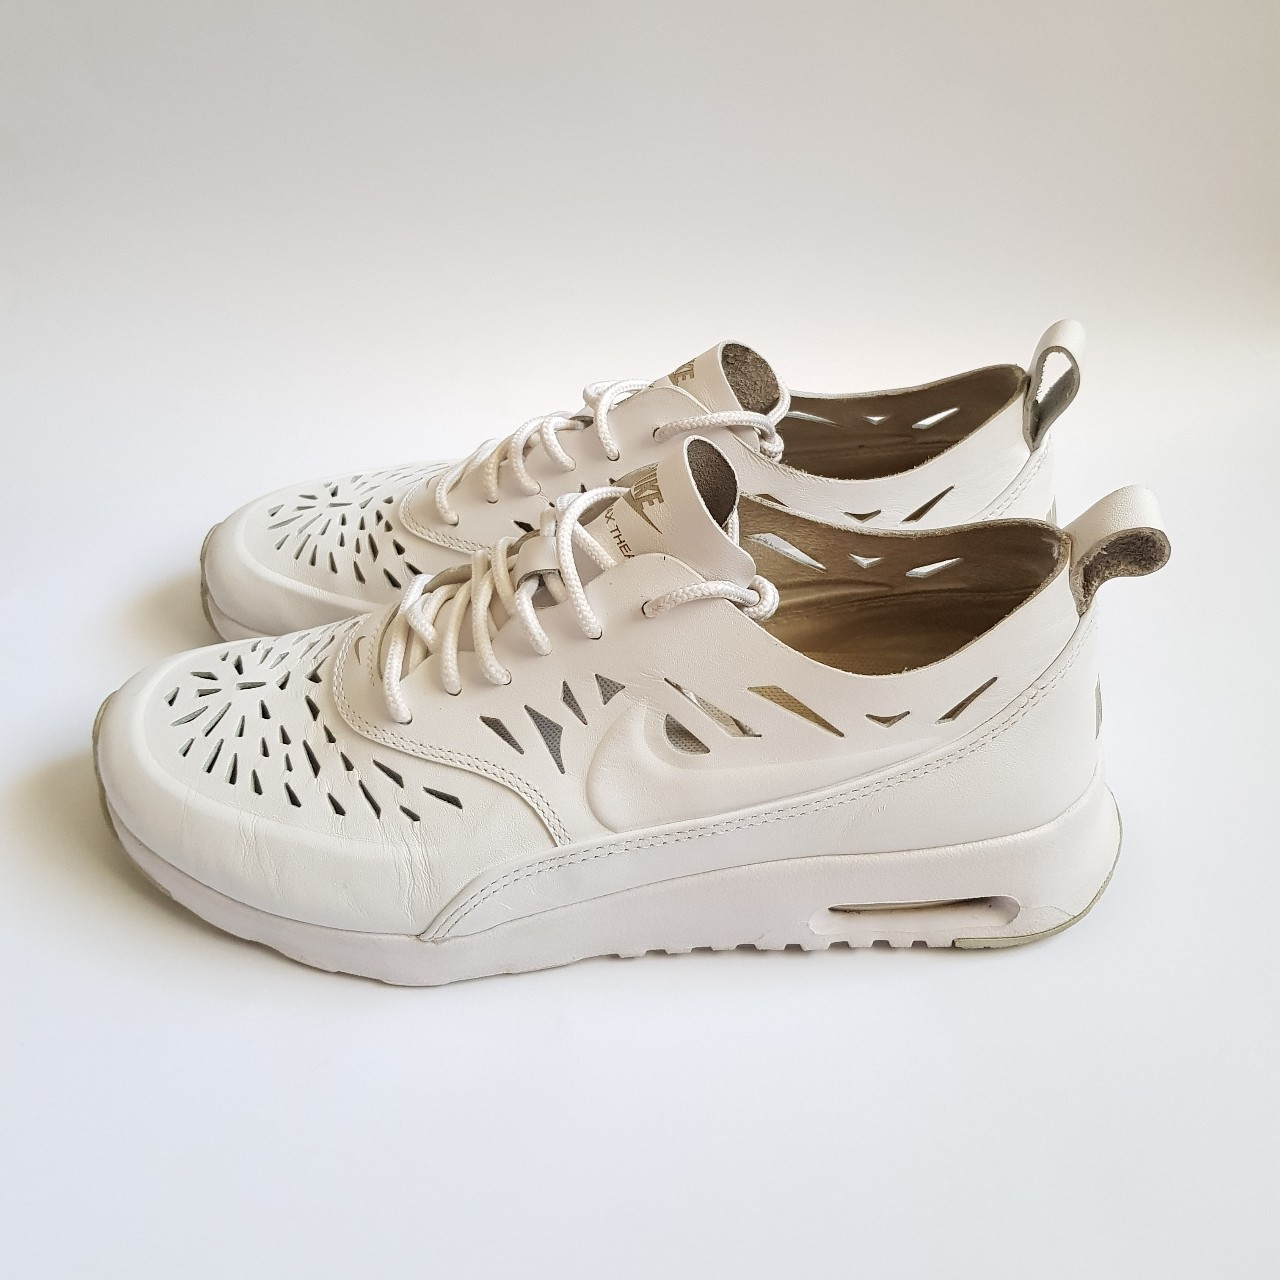 Nike Air Max Thea Joli White Trainers Women's UK Depop